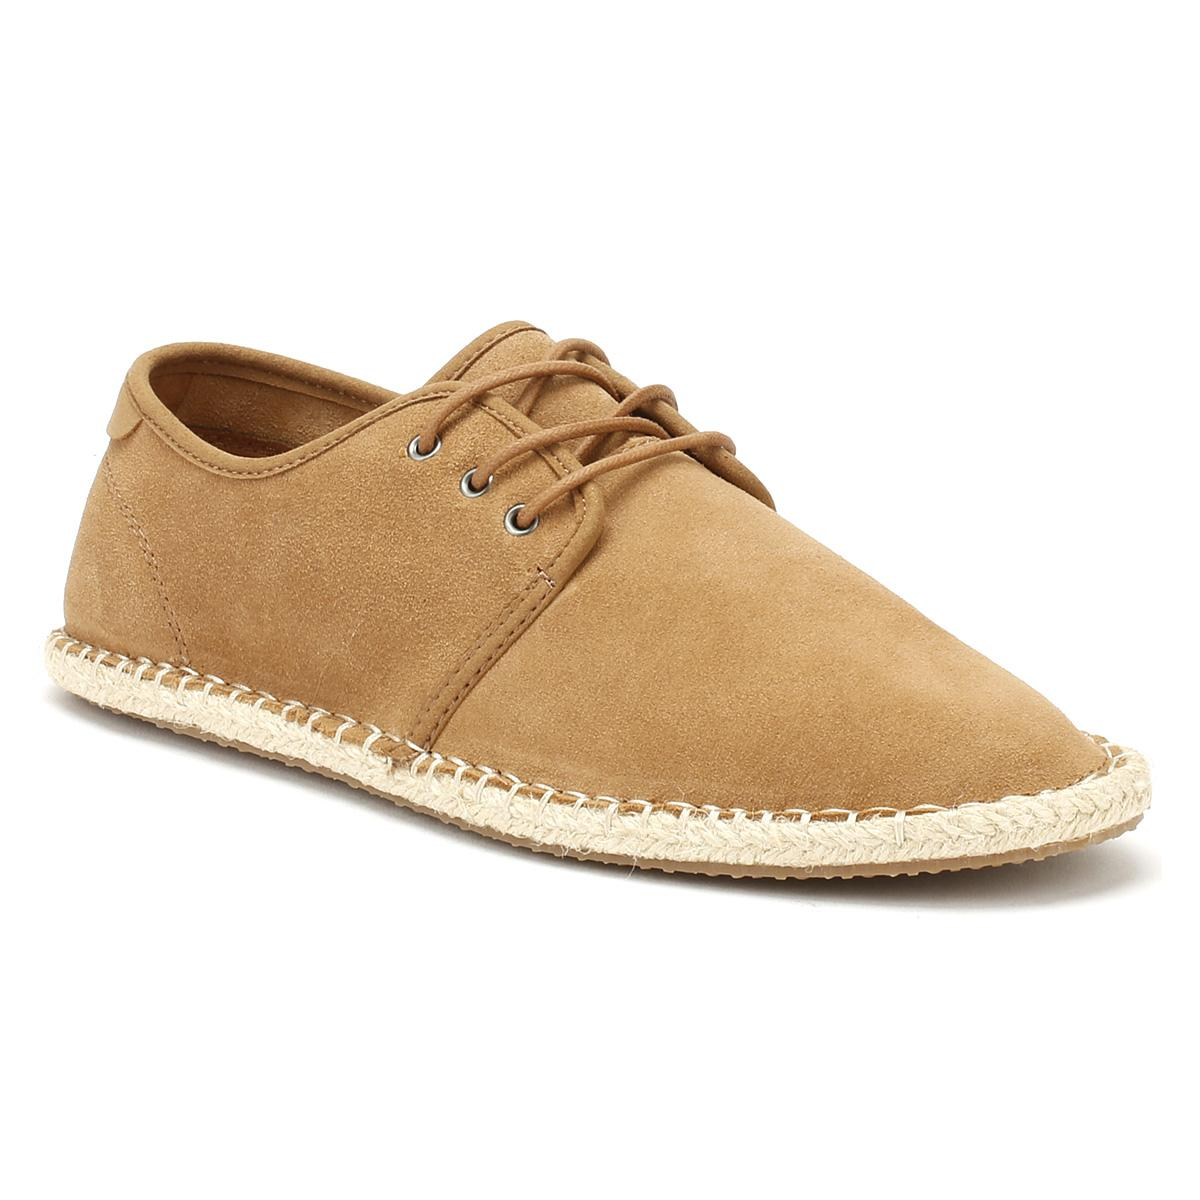 7c726eab49e Lyst - TOMS Mens Toffee Diego Espadrilles in Brown for Men